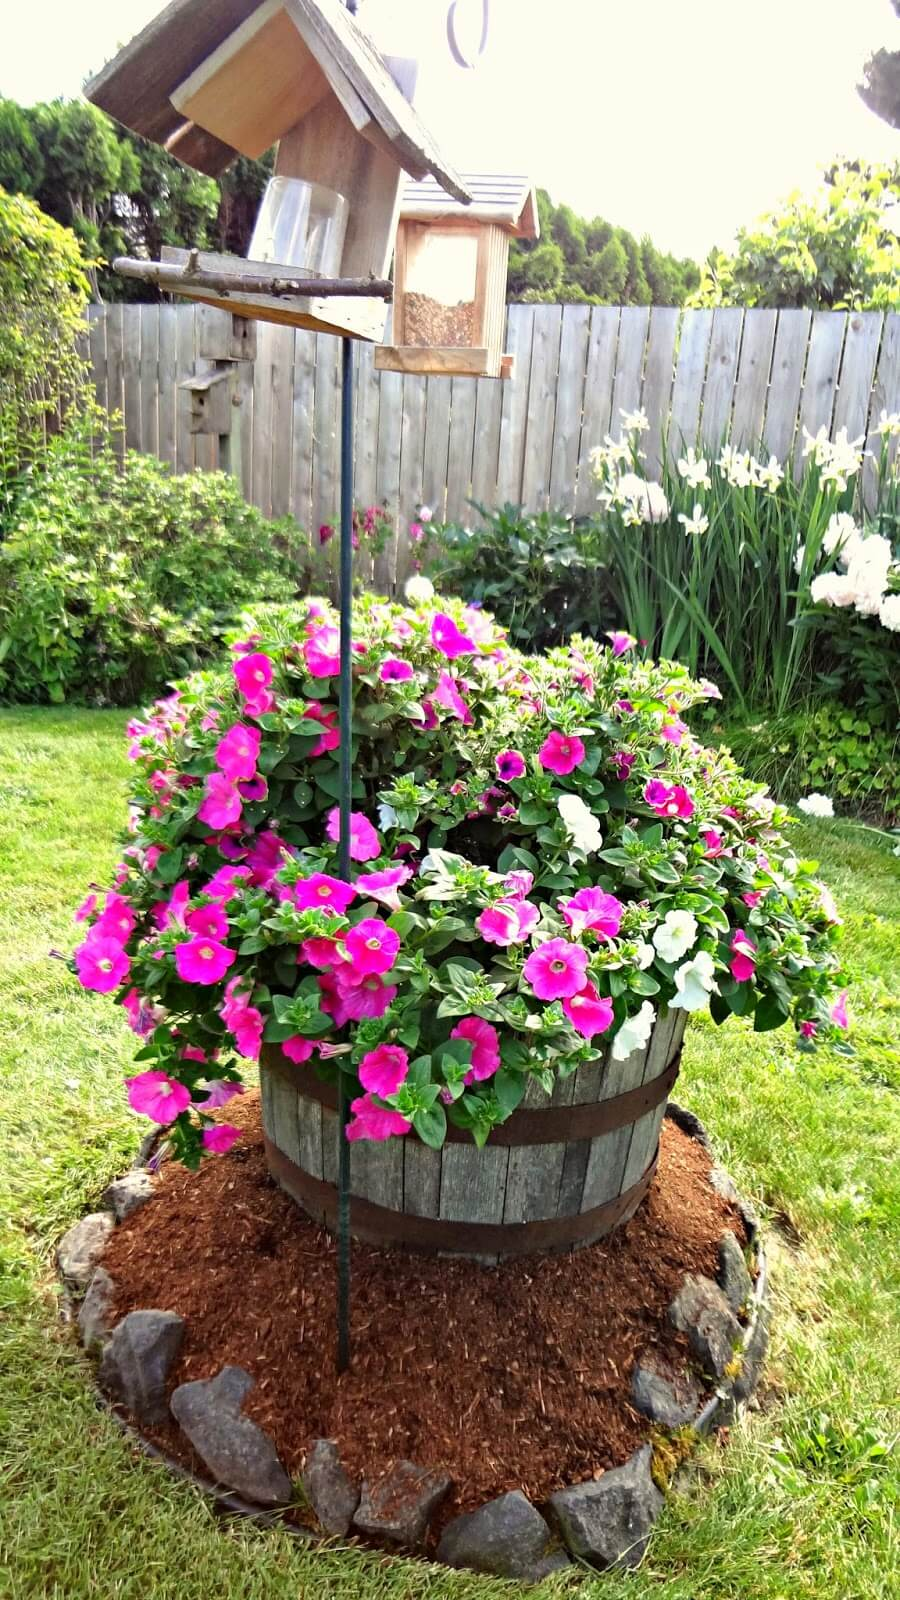 Barrel of Petunias by the Bird Feeder